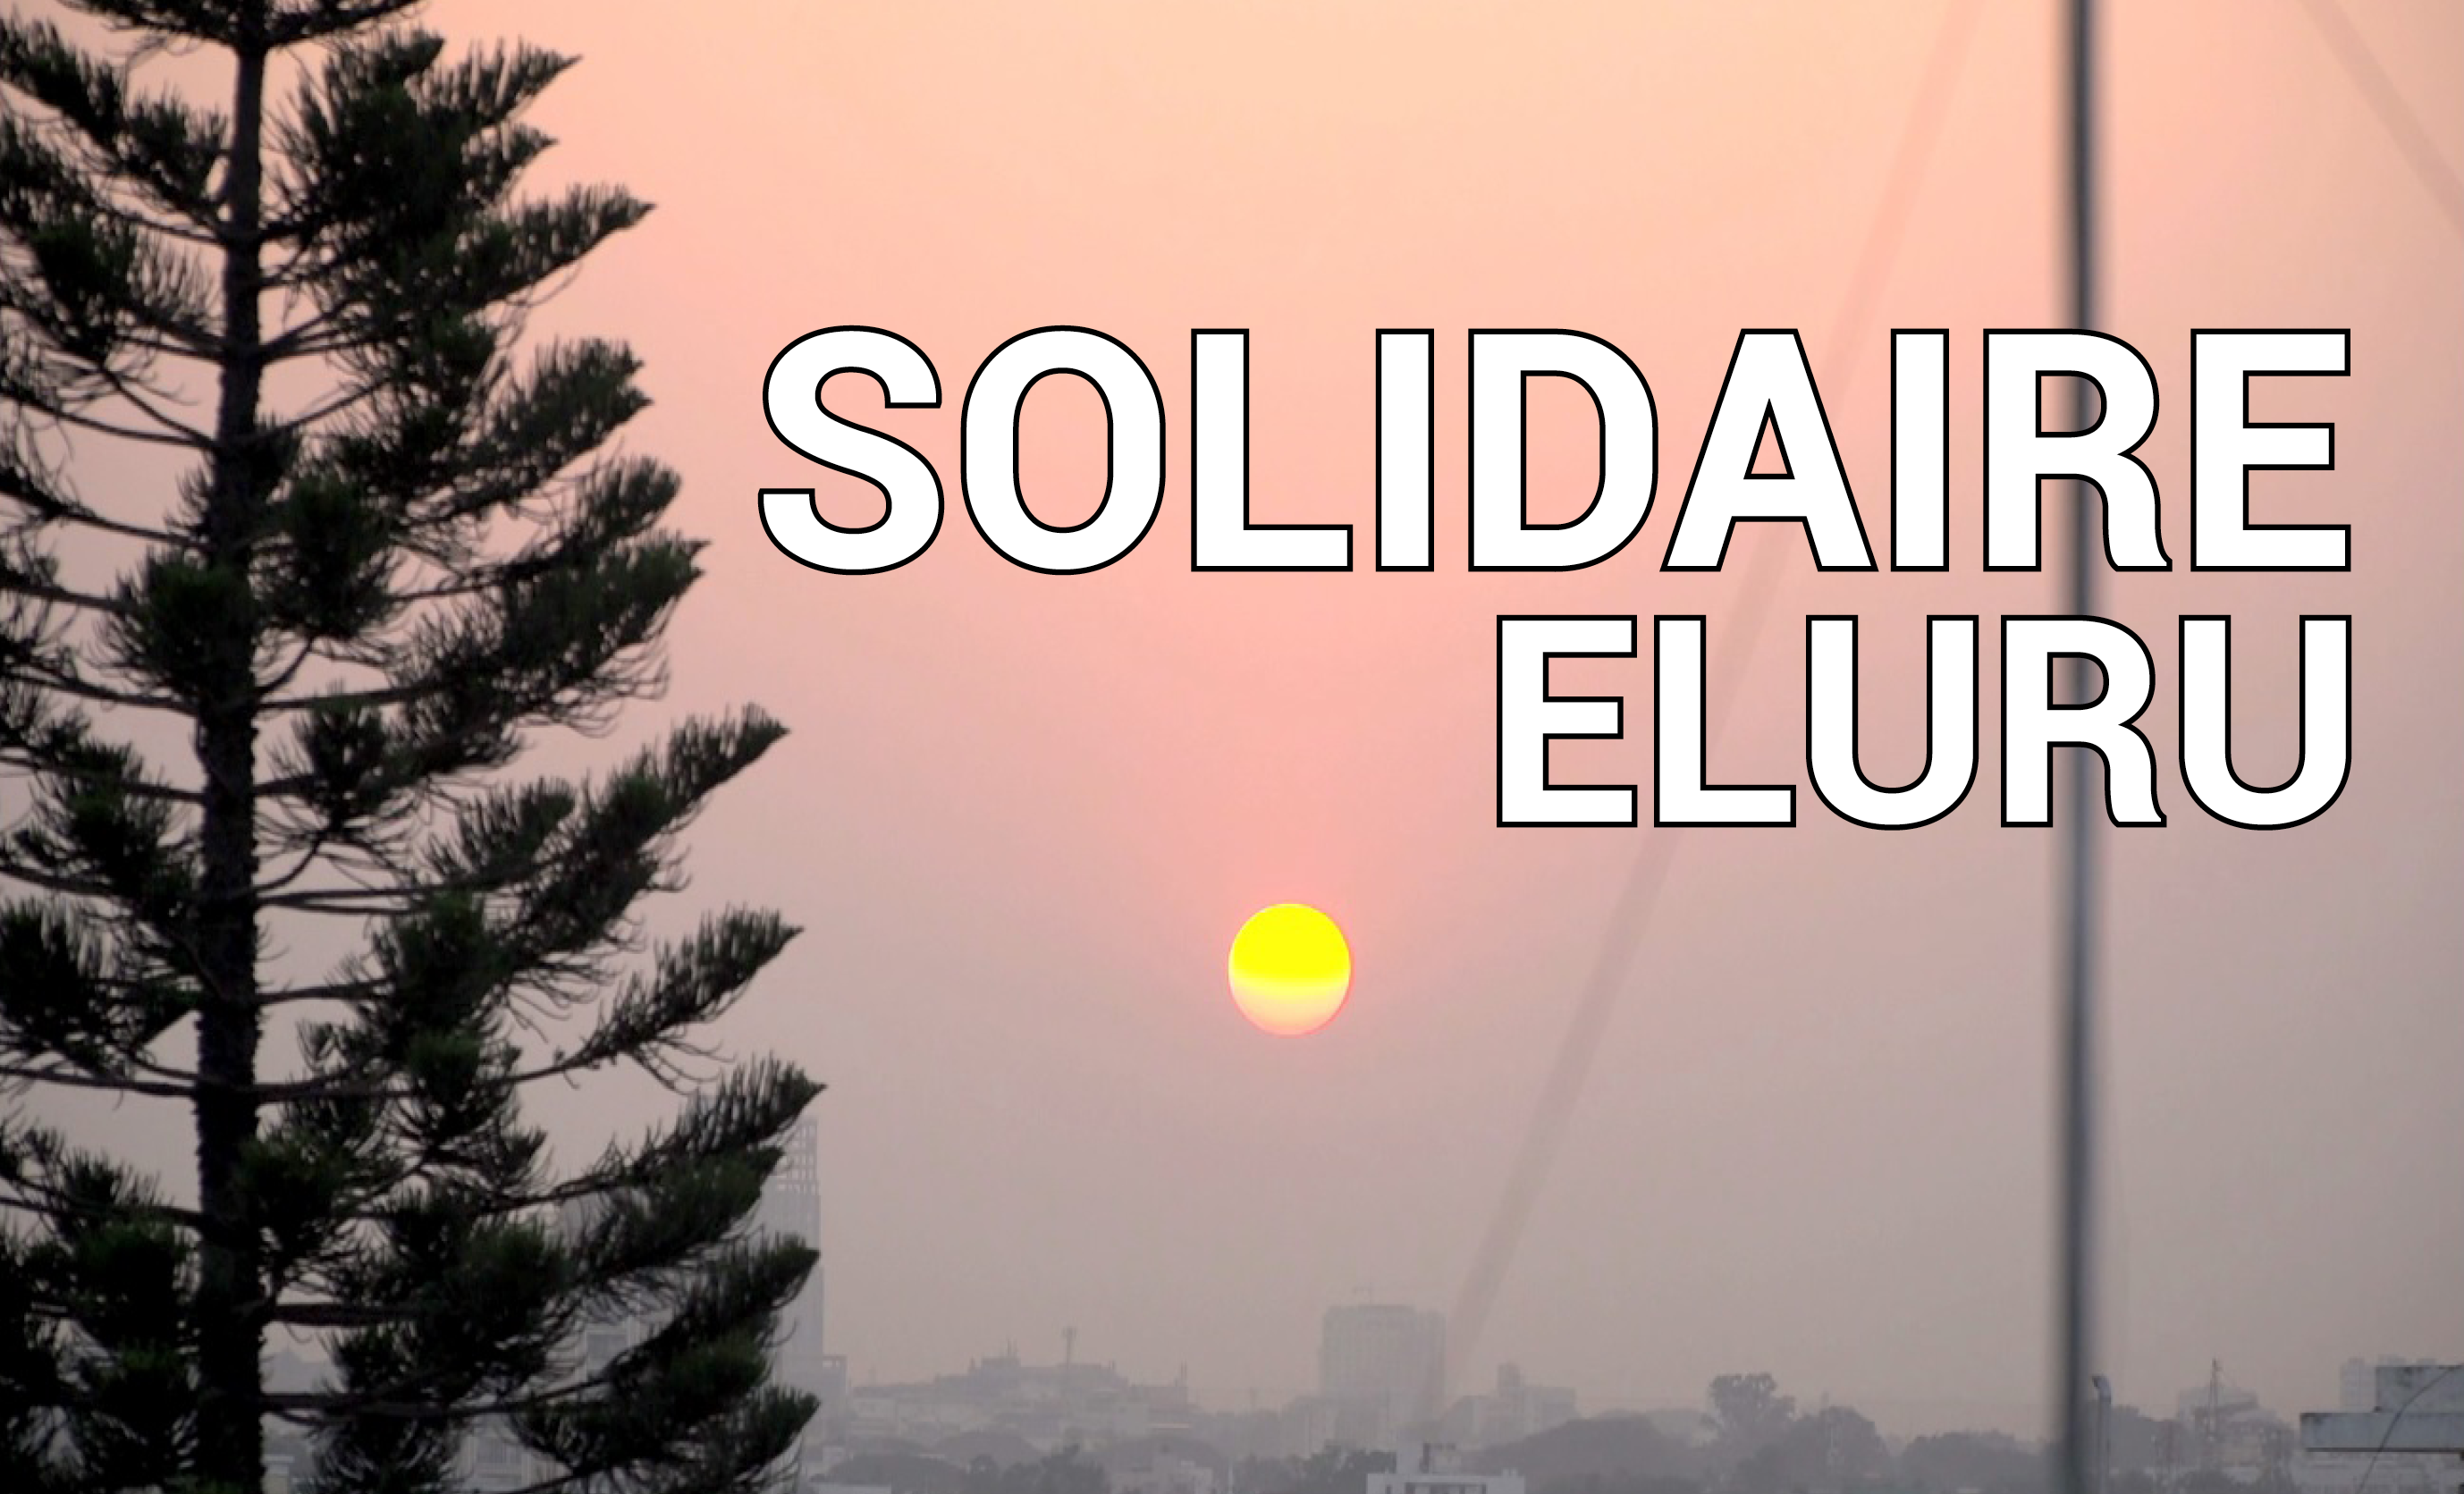 visuel_solidaire-1528984856.png